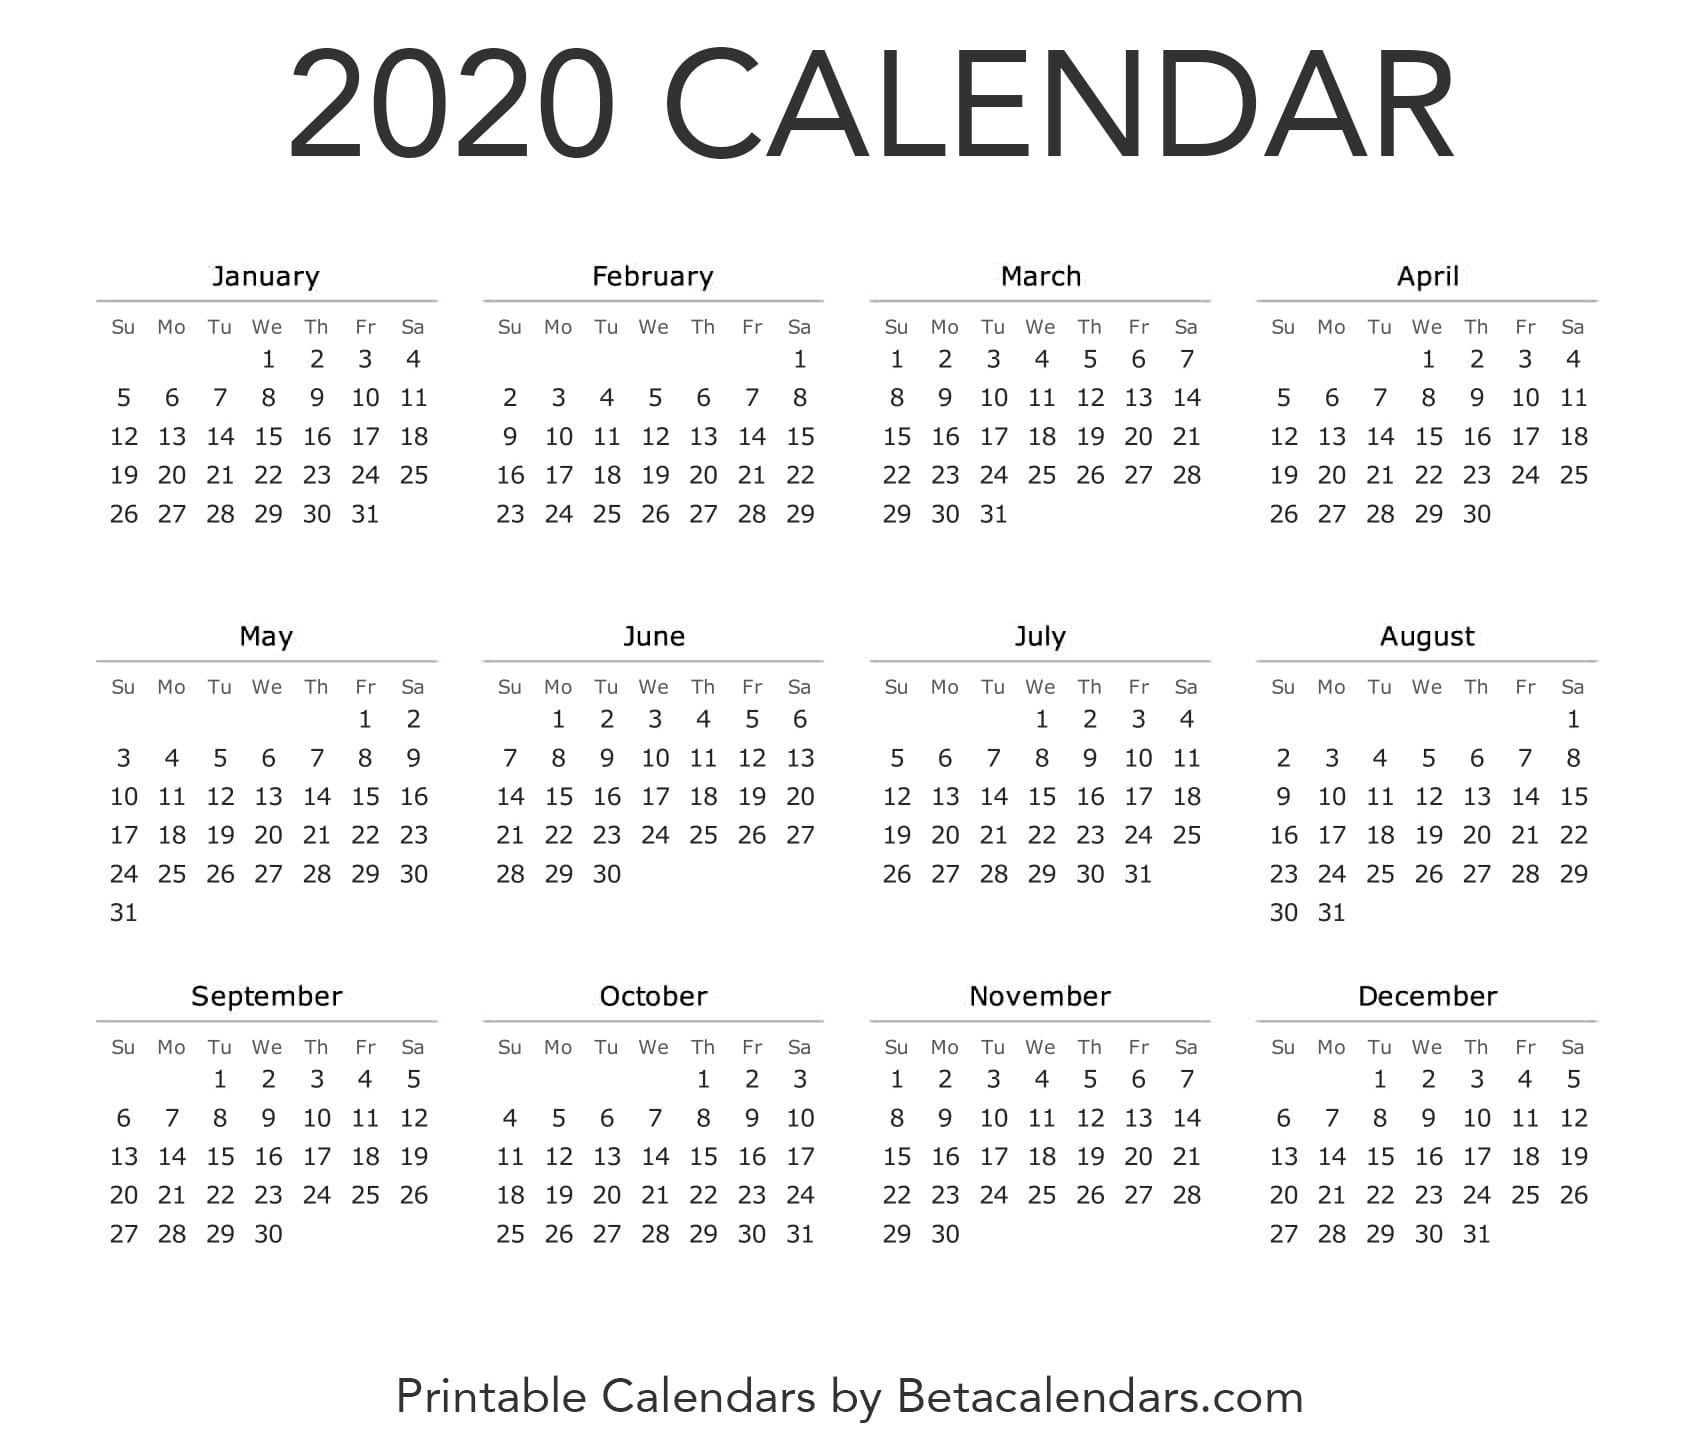 Calendar 2020 | Printable Yearly Calendar, Calendar, Yearly